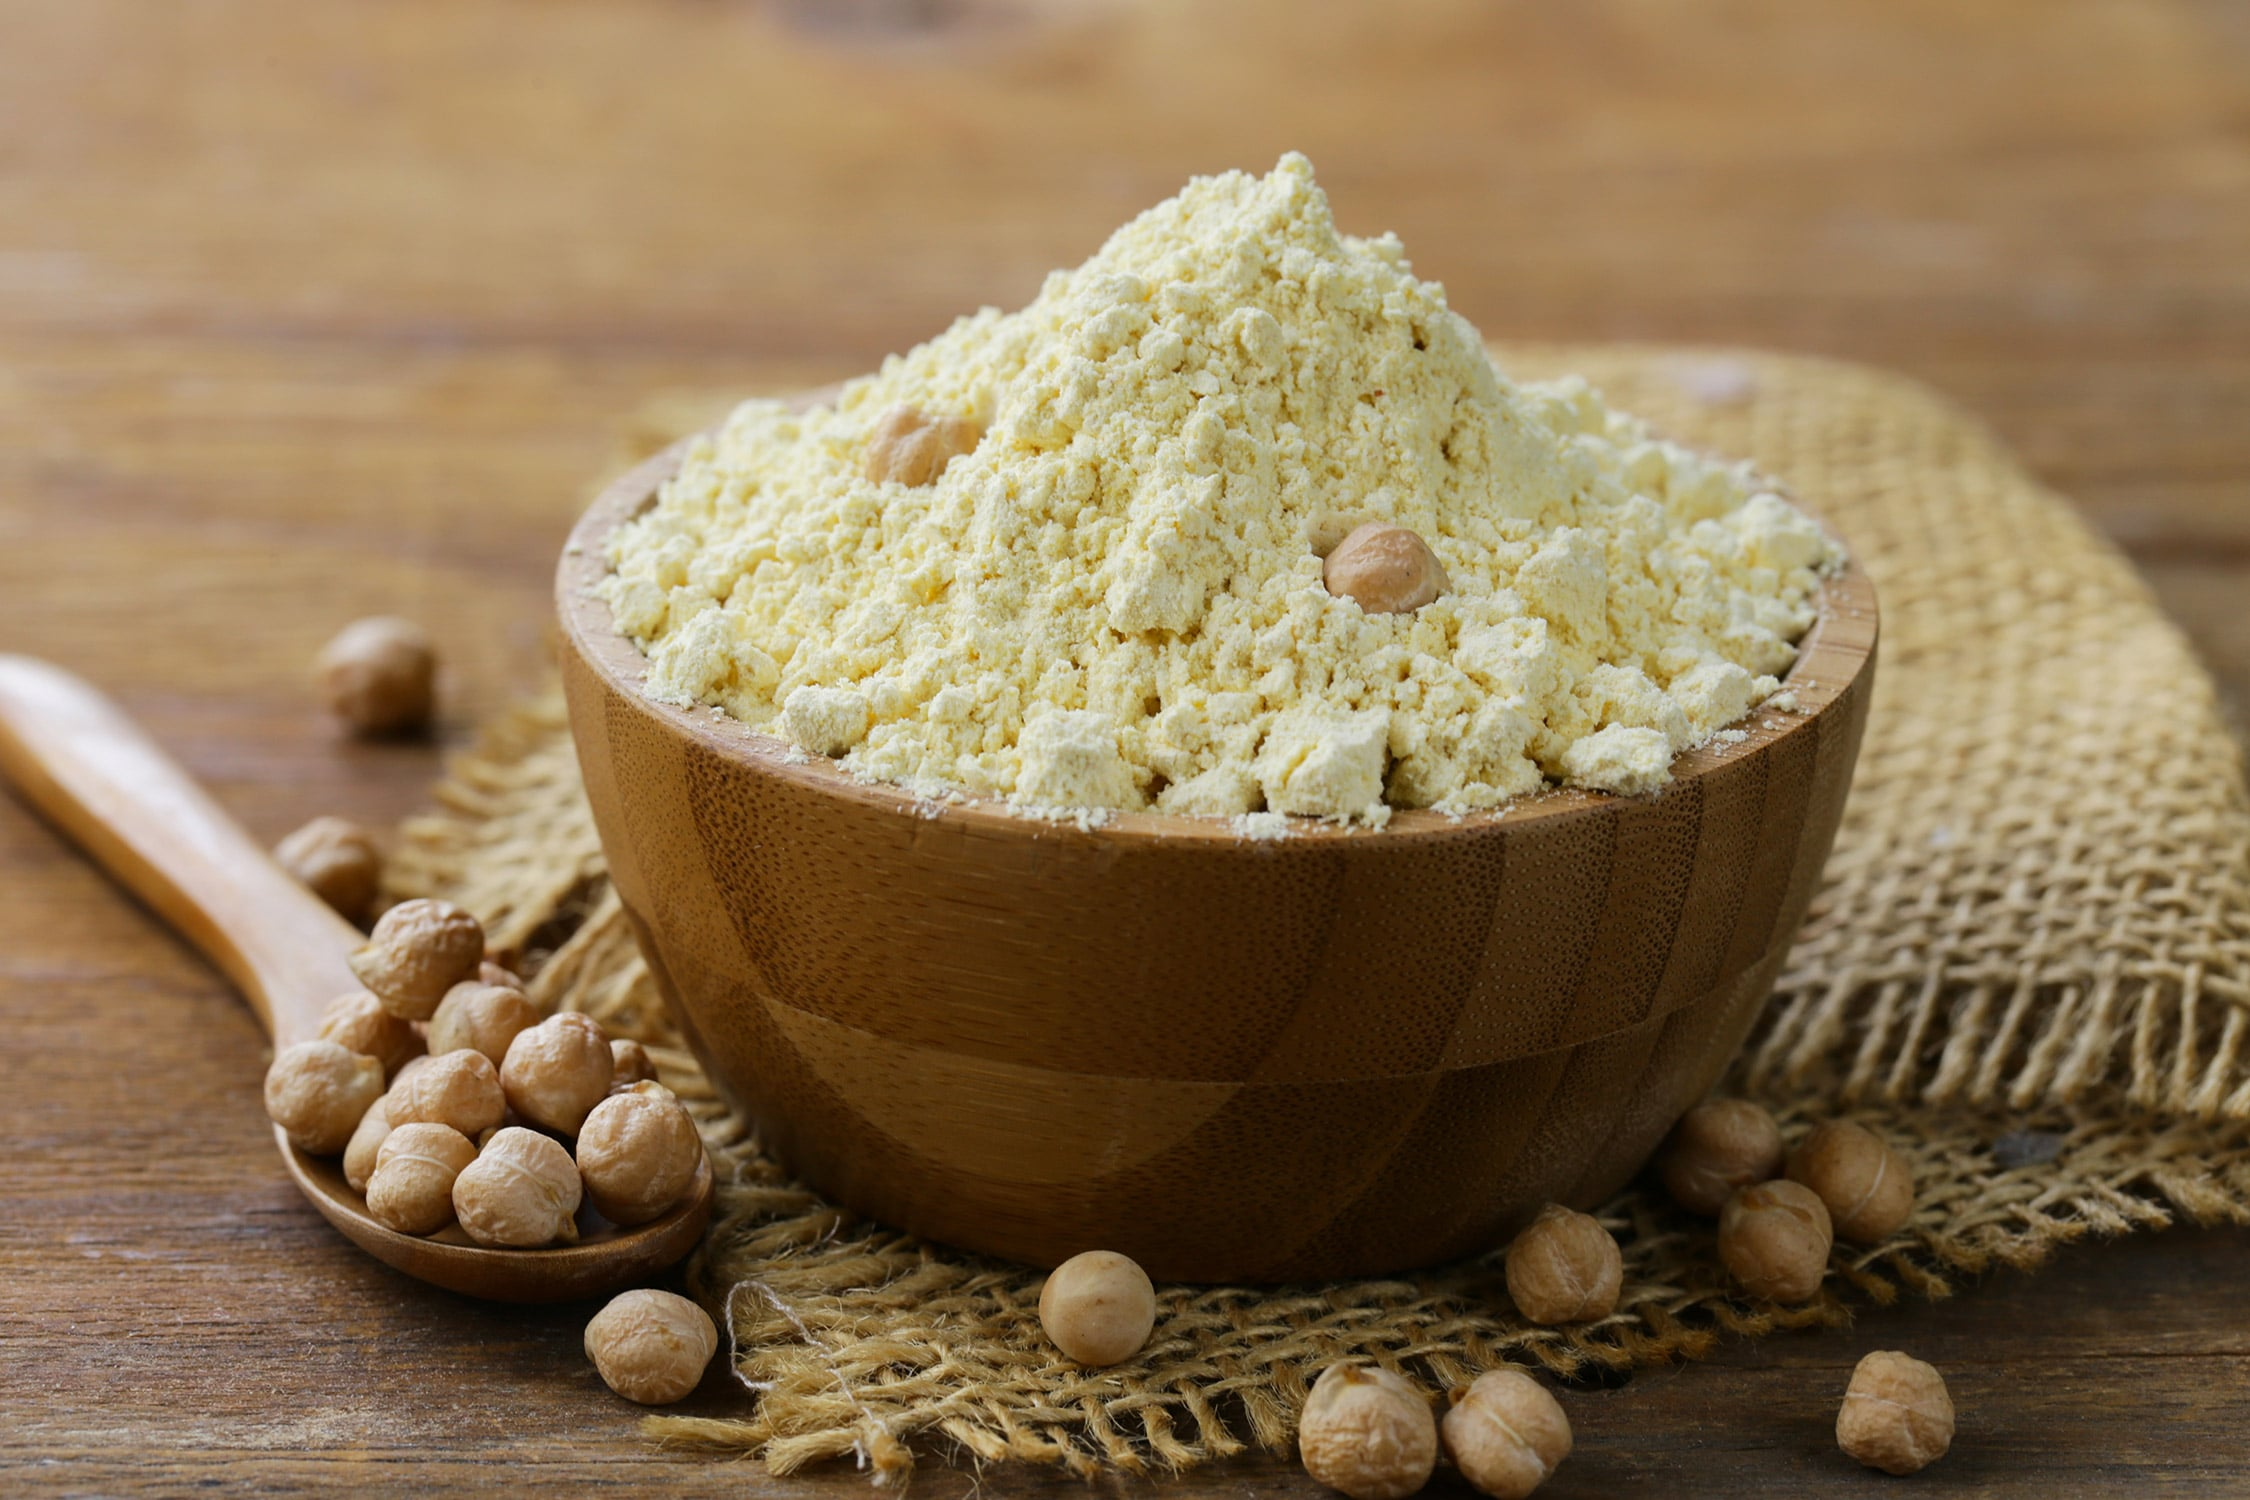 Gram Flour (Basin) is good for skin